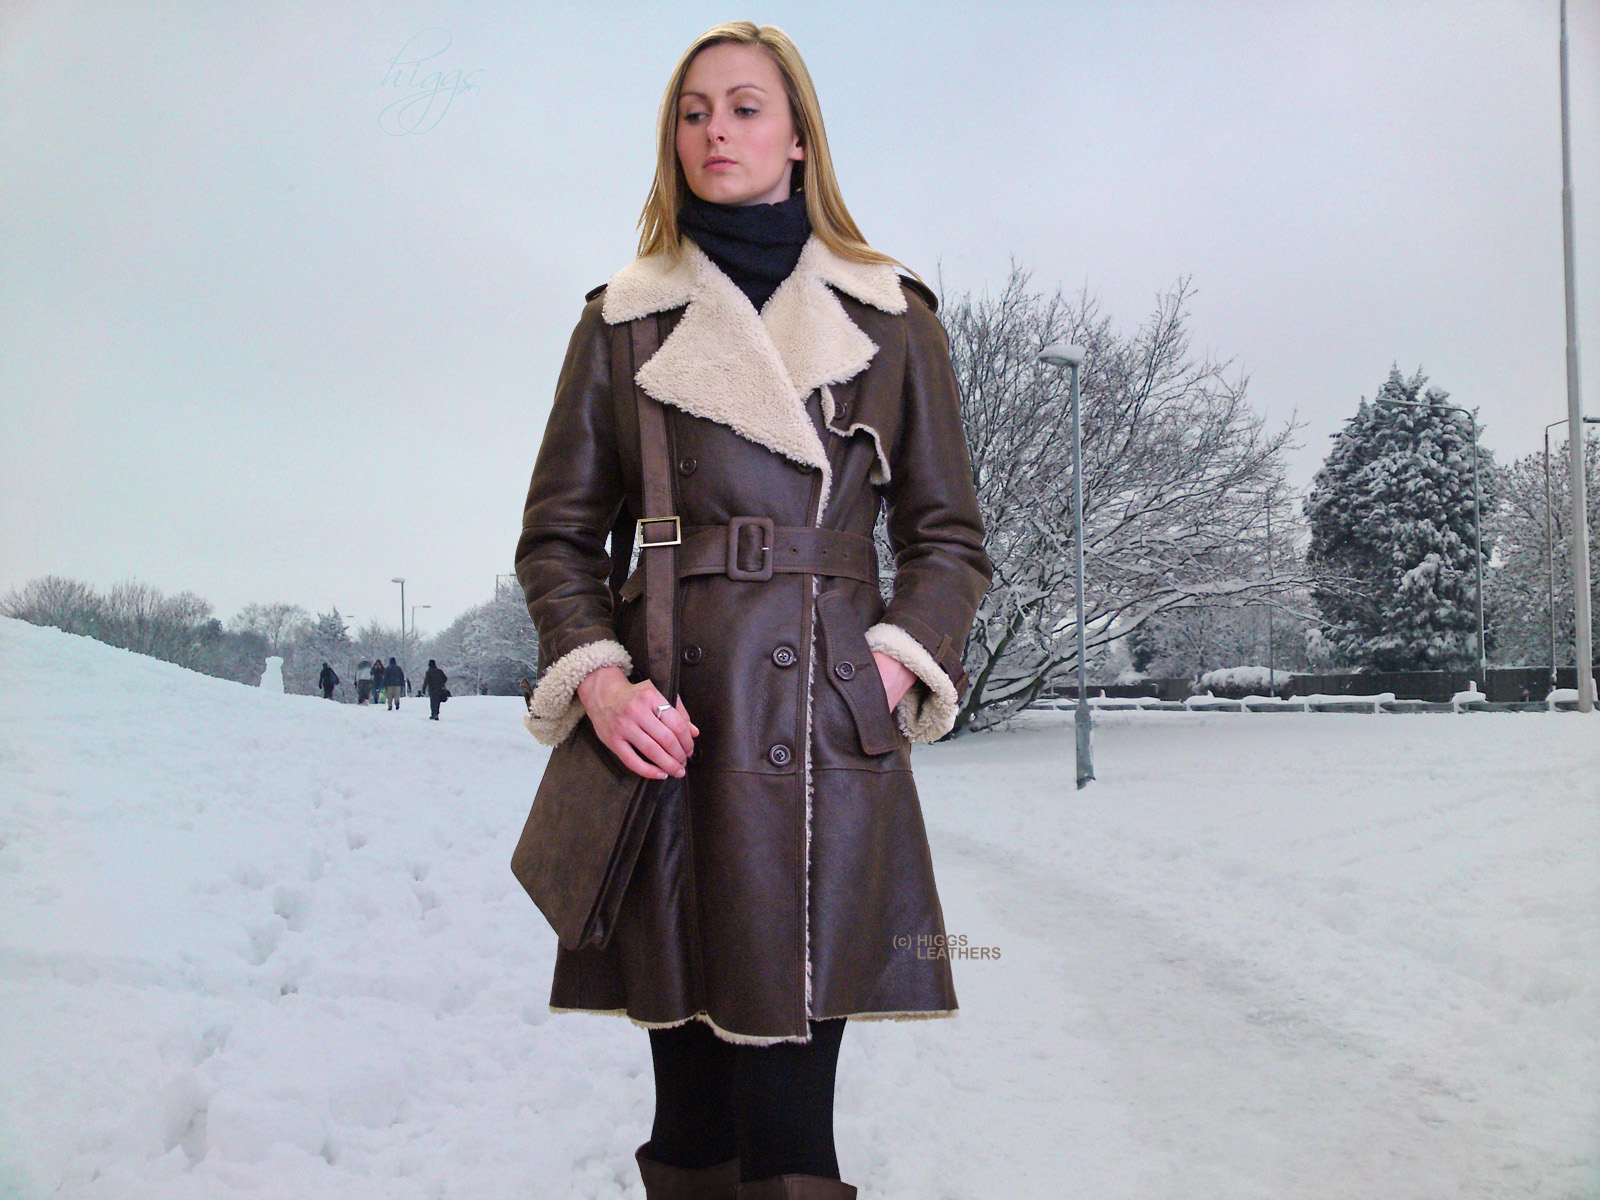 Sheepskin Coats Uk | Homewood Mountain Ski Resort